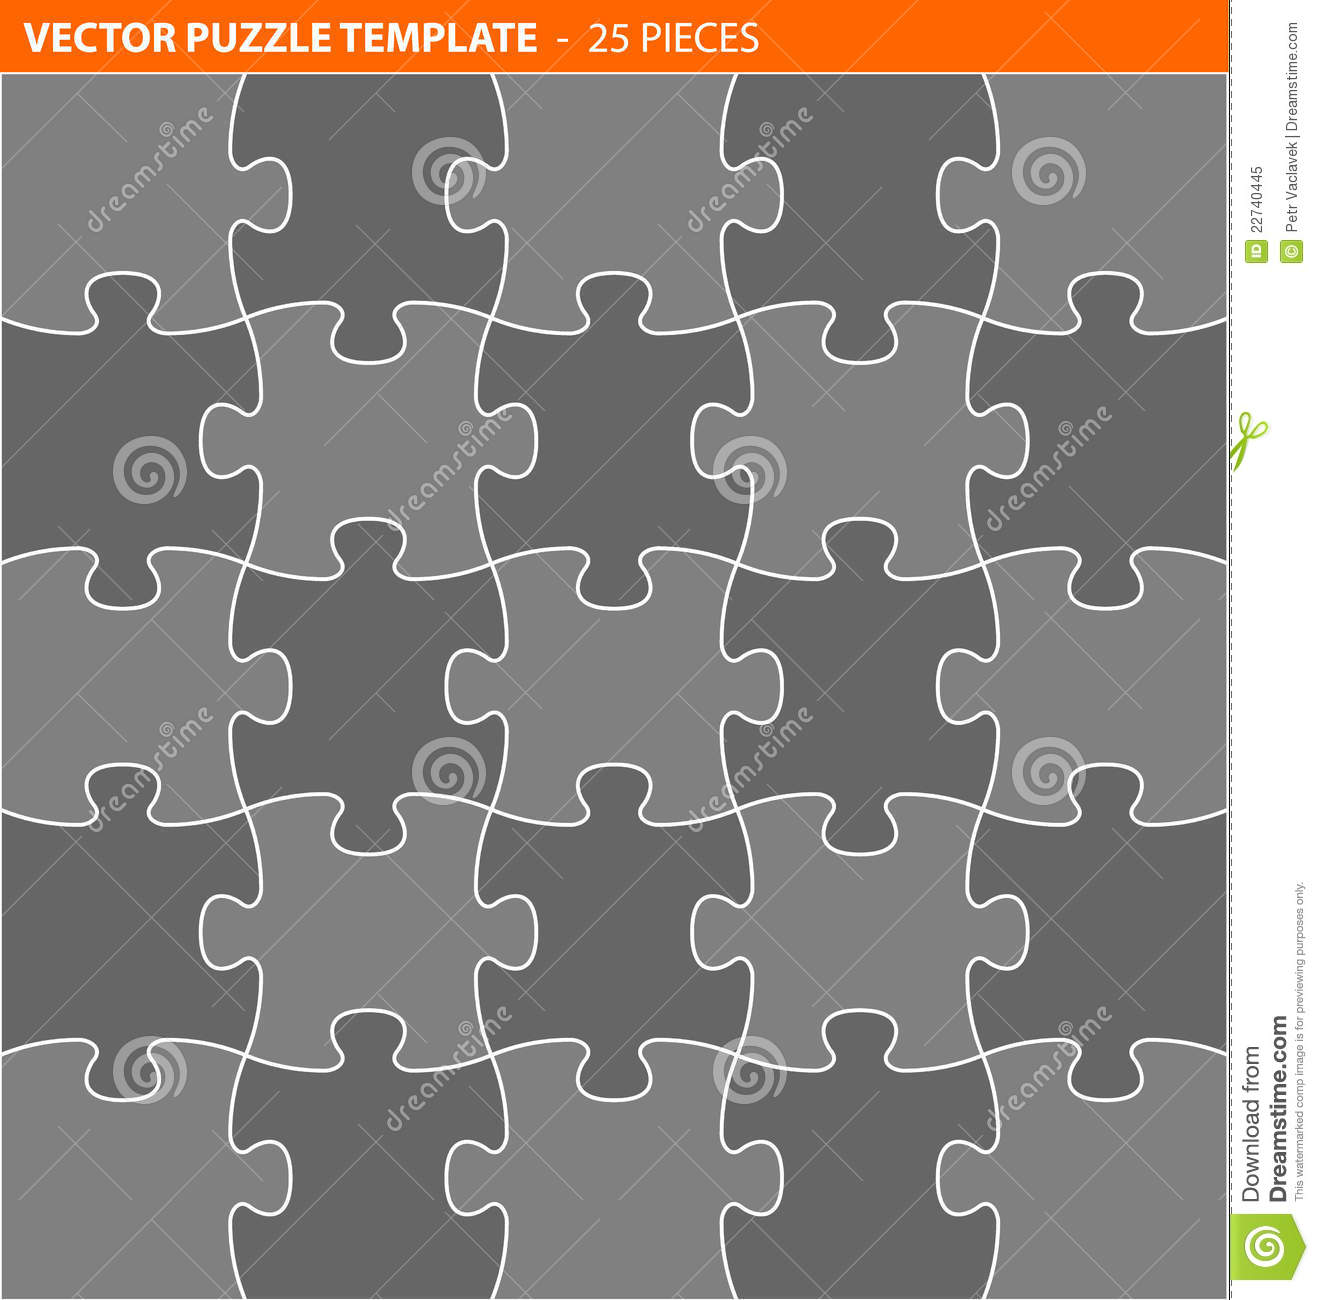 complete vector puzzle jigsaw template stock vector illustration